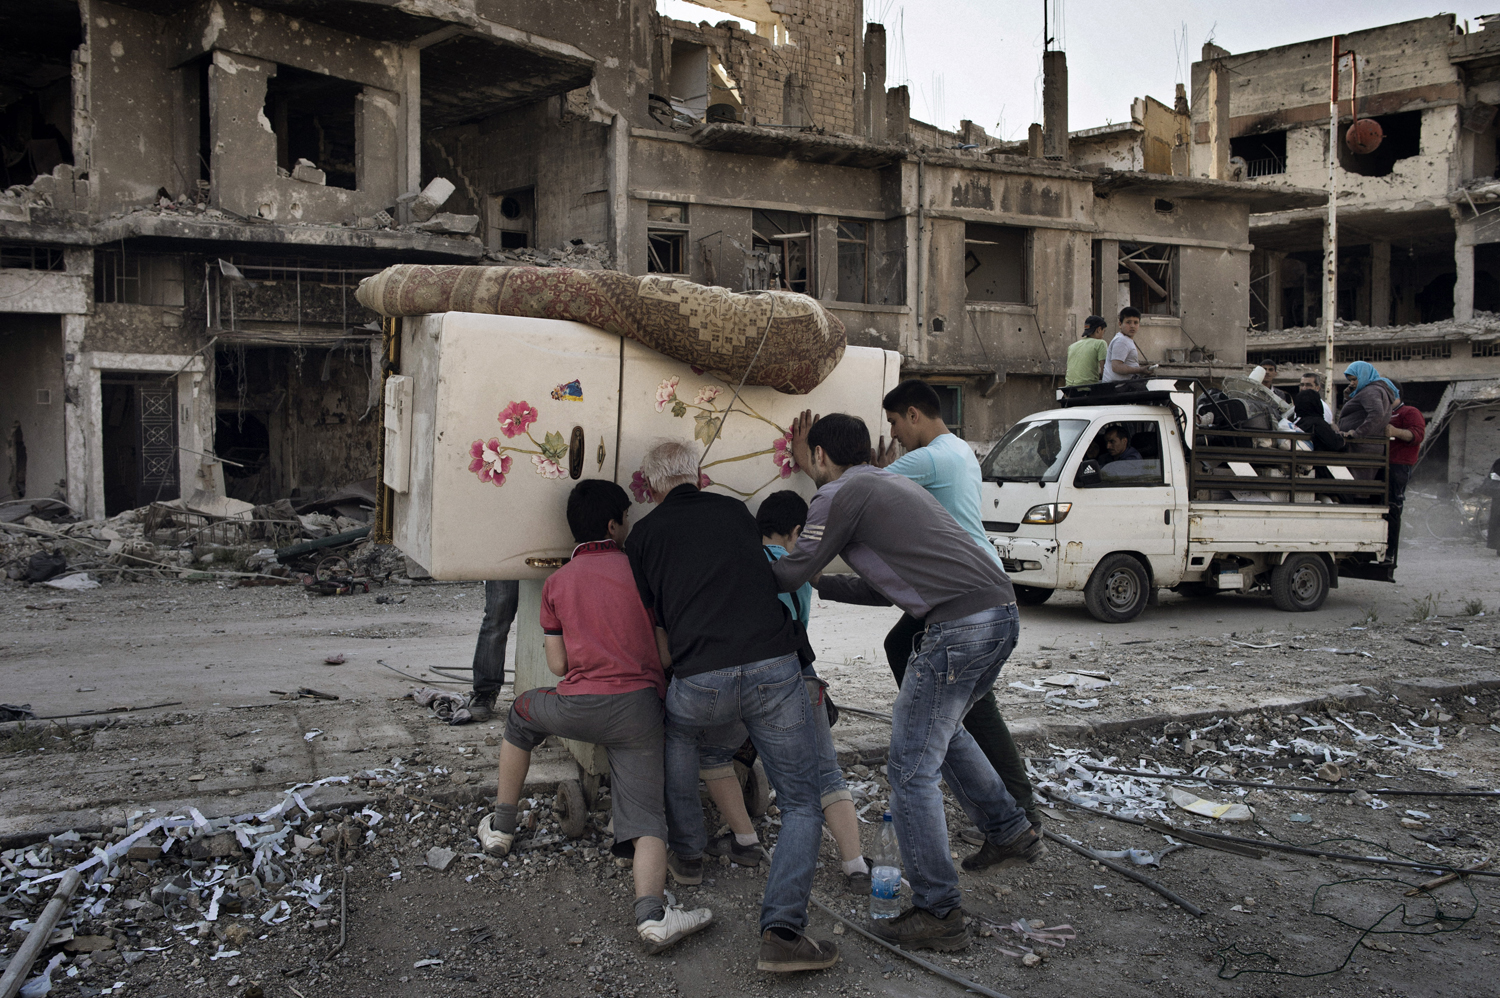 Residents return to the Qabaris neighborhood of Homs to salvage what remains of their homes. May 12, 2014.